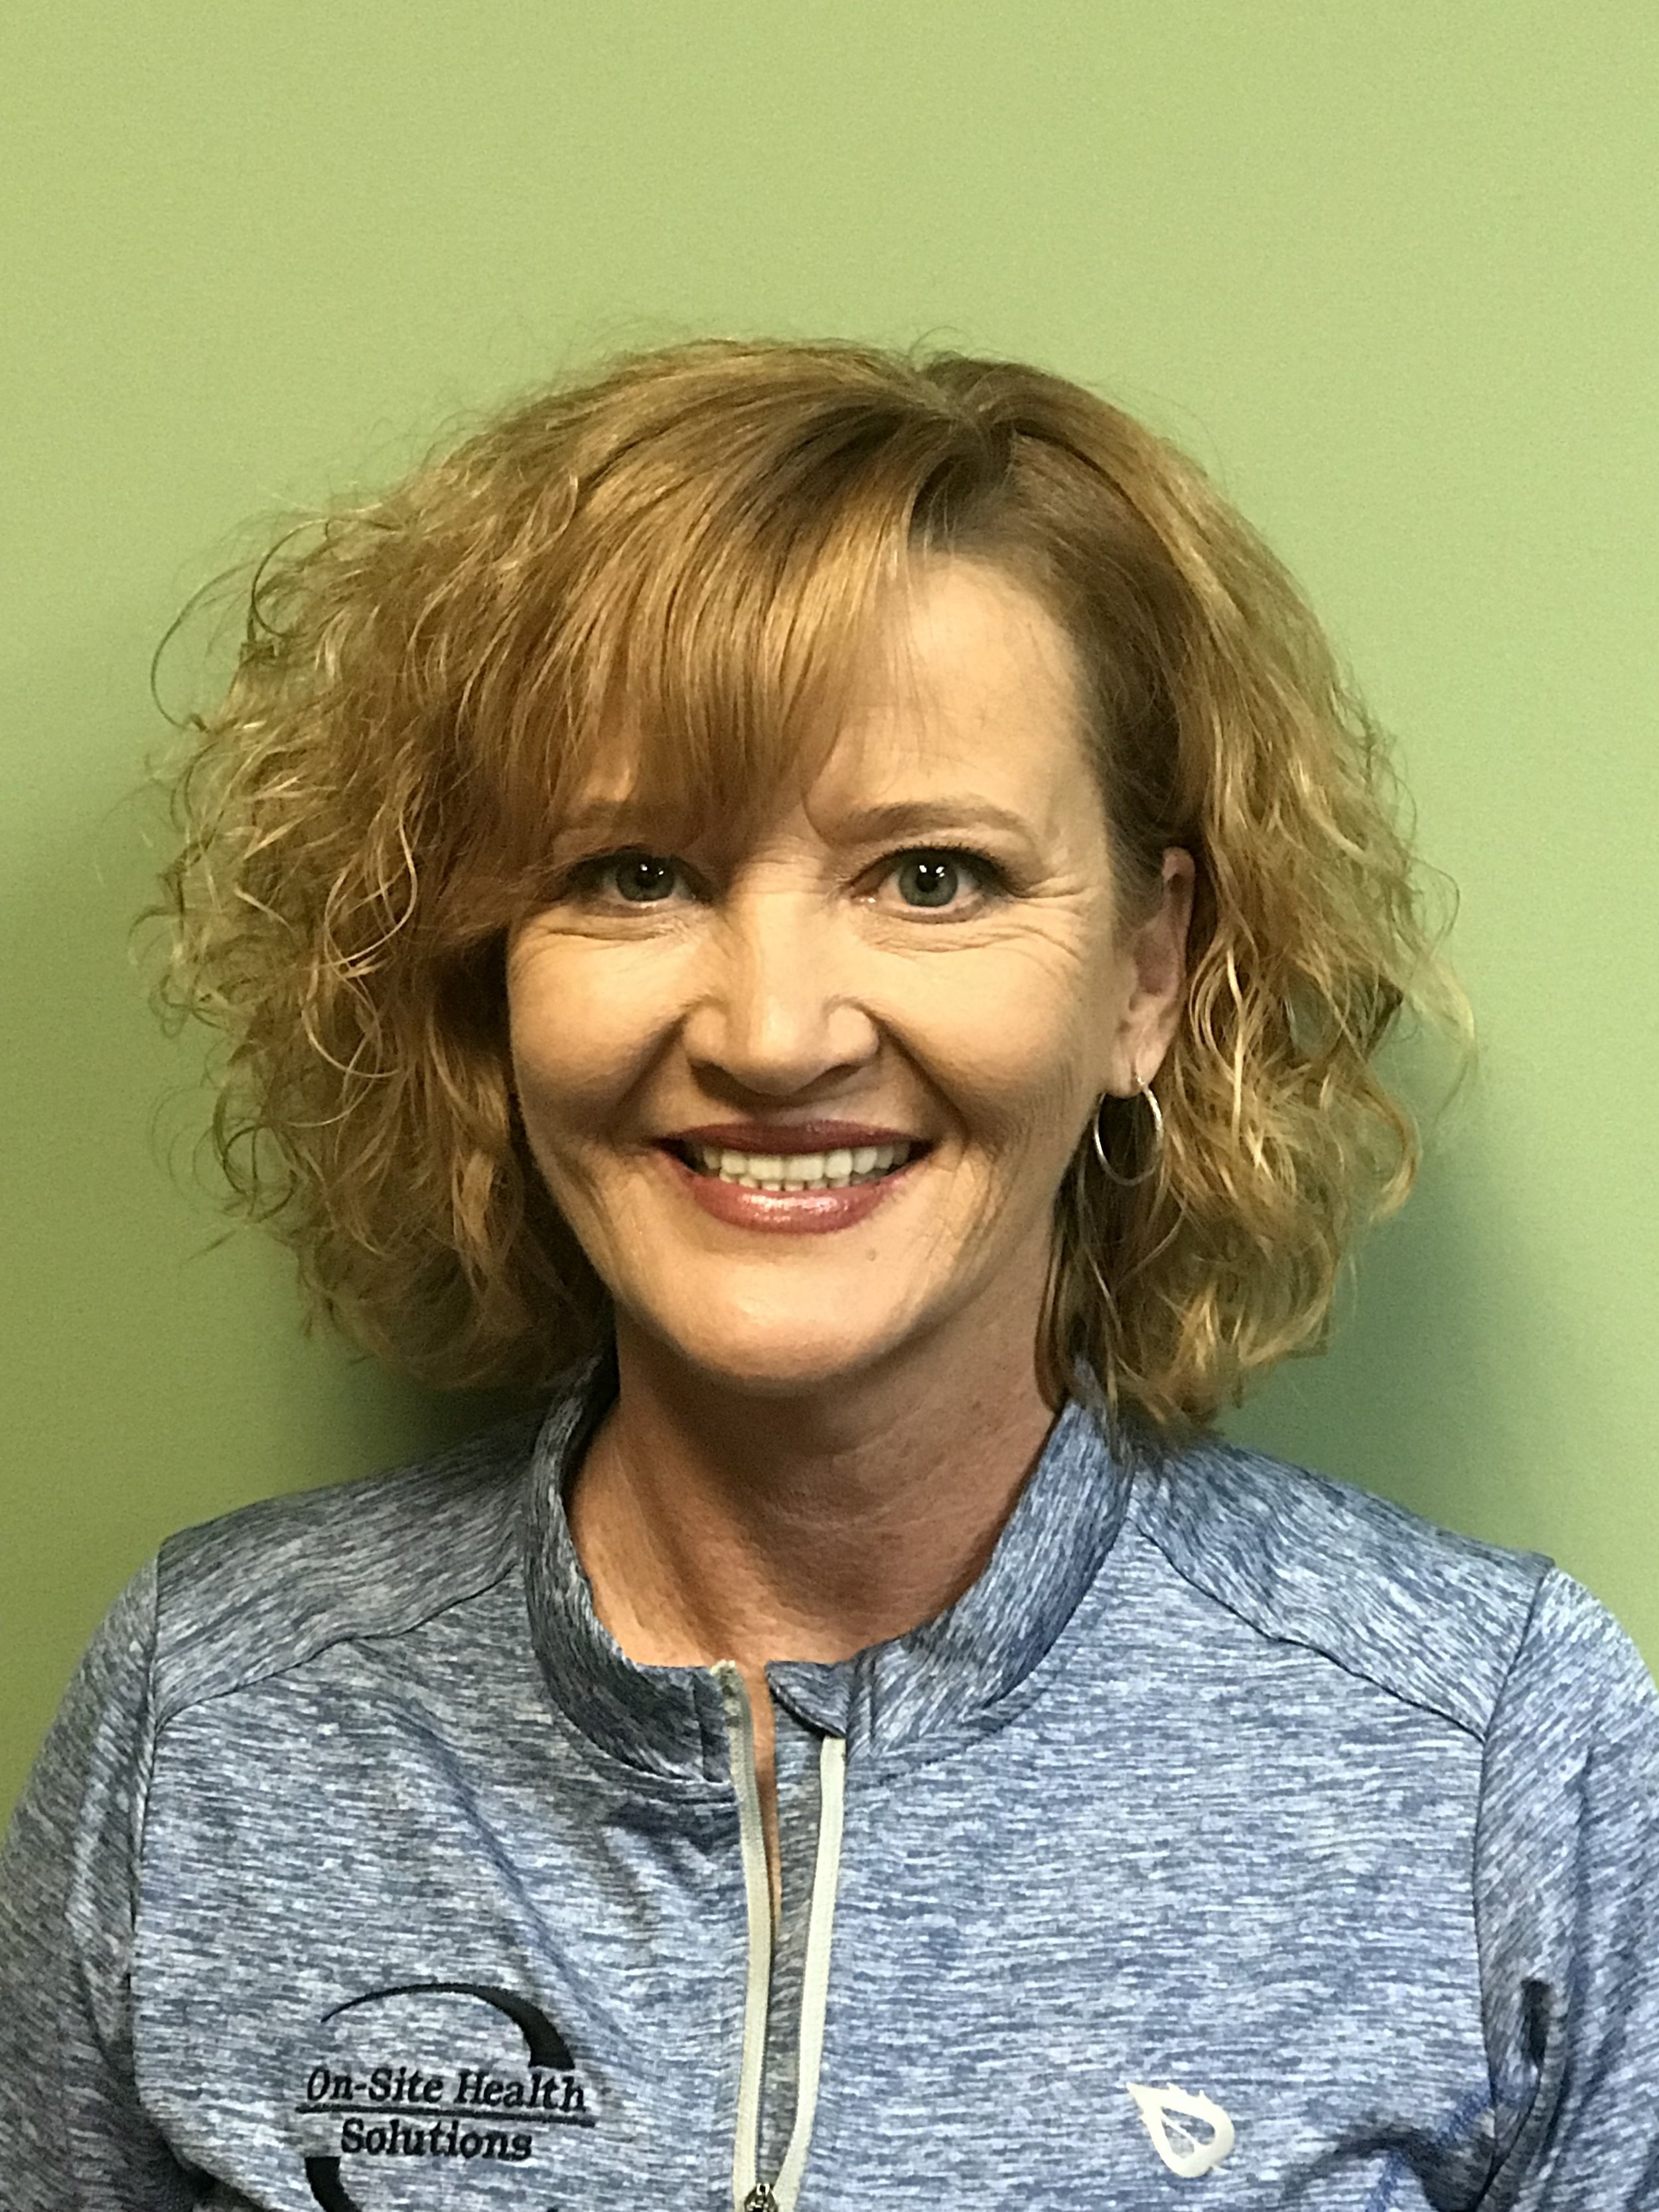 Janna -  Wellness Engagement Specialist  Janna attended the University of Kentucky and graduated from the University of Louisville in 1992 with an Associates degree in radiography. She enjoys playing golf, spending time with her large family and friends, and following the Kentucky Wildcats and Cincinnati Reds.  Janna says the best part of working at OHS is the close knit family atmosphere. She enjoys going on site to different types of workplace environments and providing clients with information about their health they might not otherwise have known without our services.   janna@healthyworksite.com